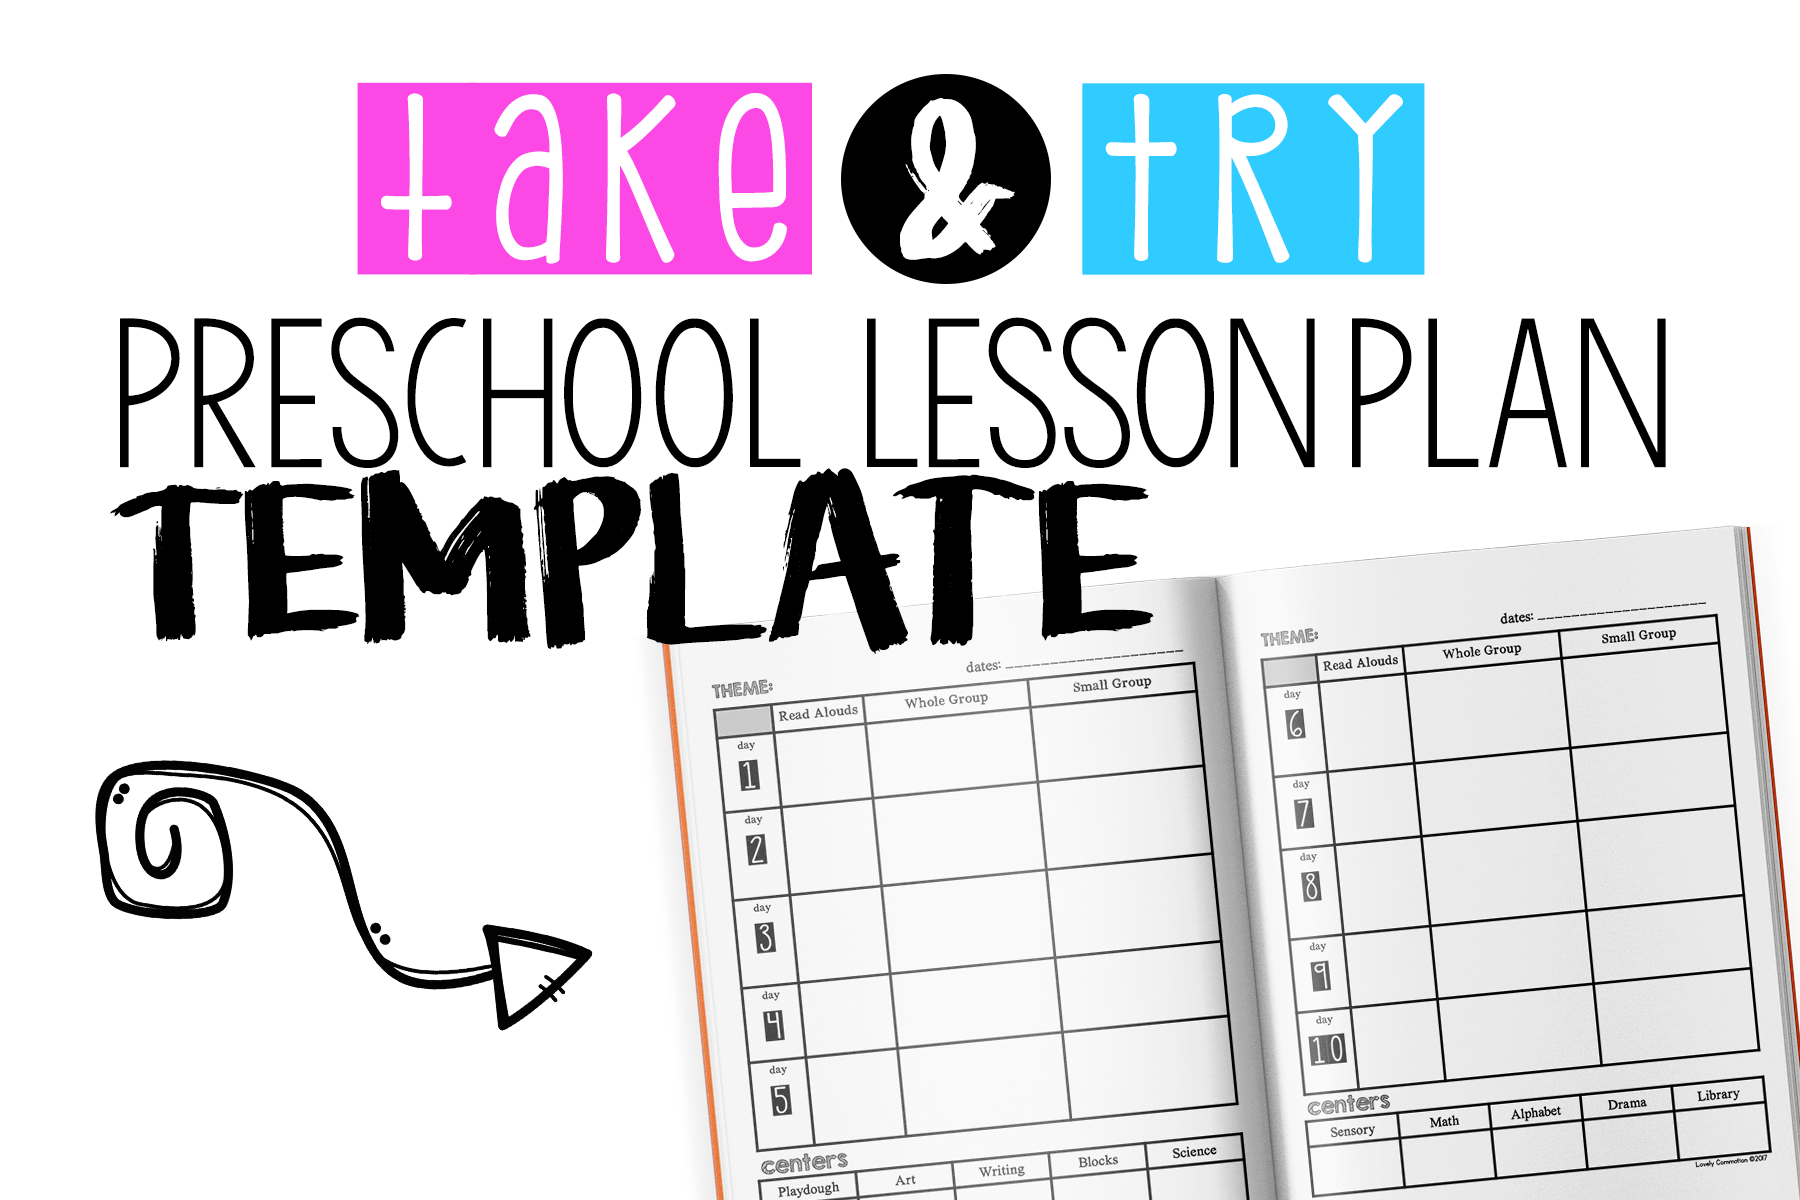 lesson-plan-templates.png